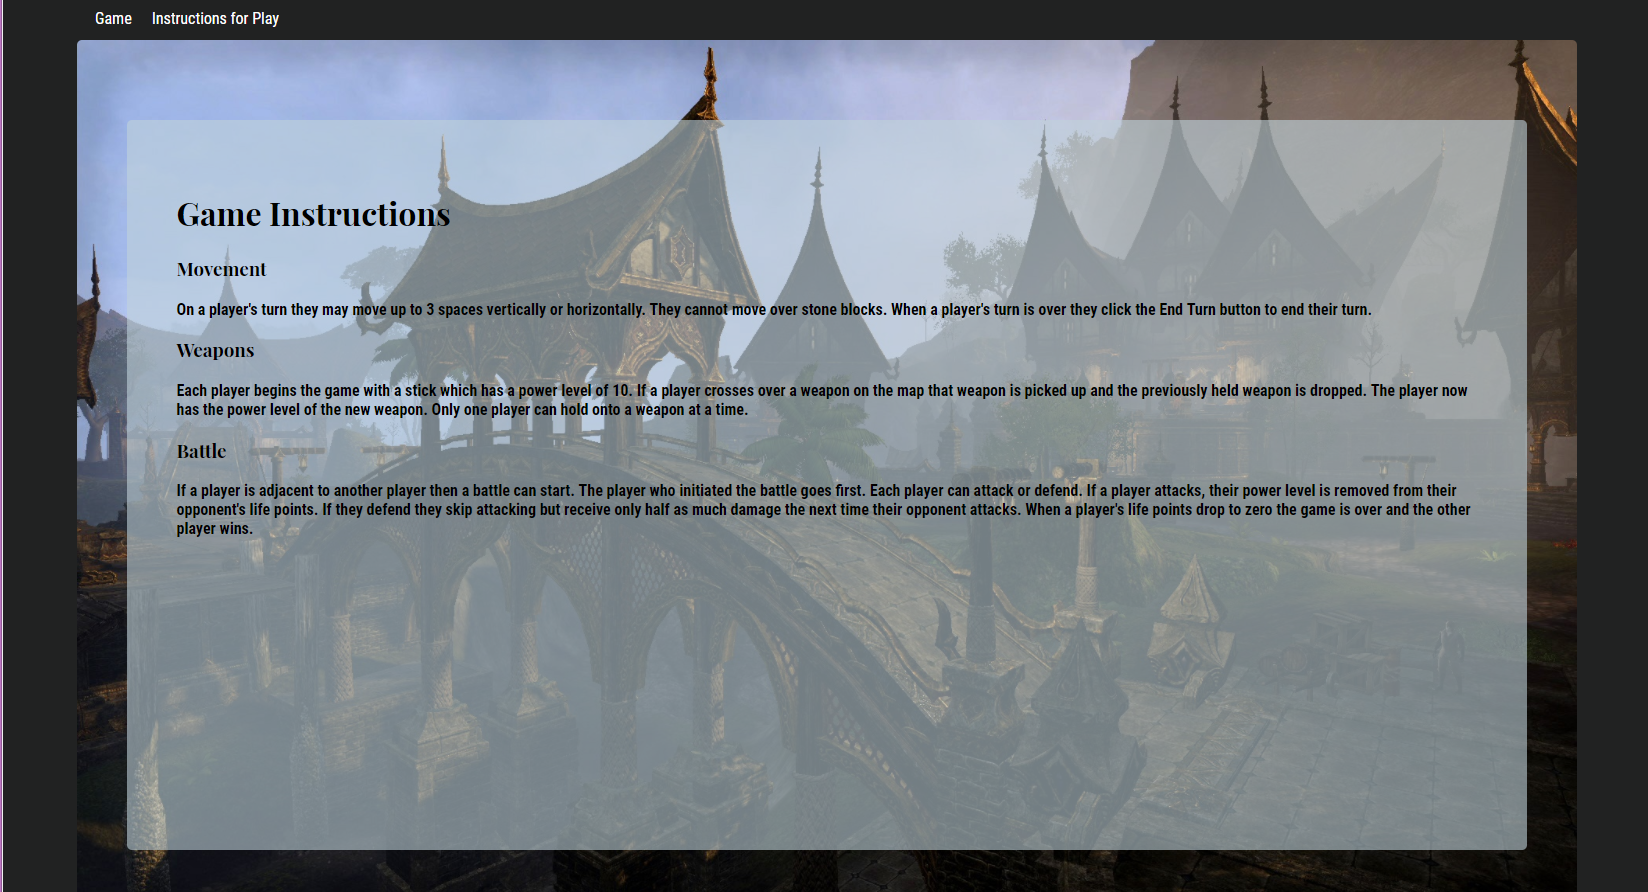 Screenshot of game instructions